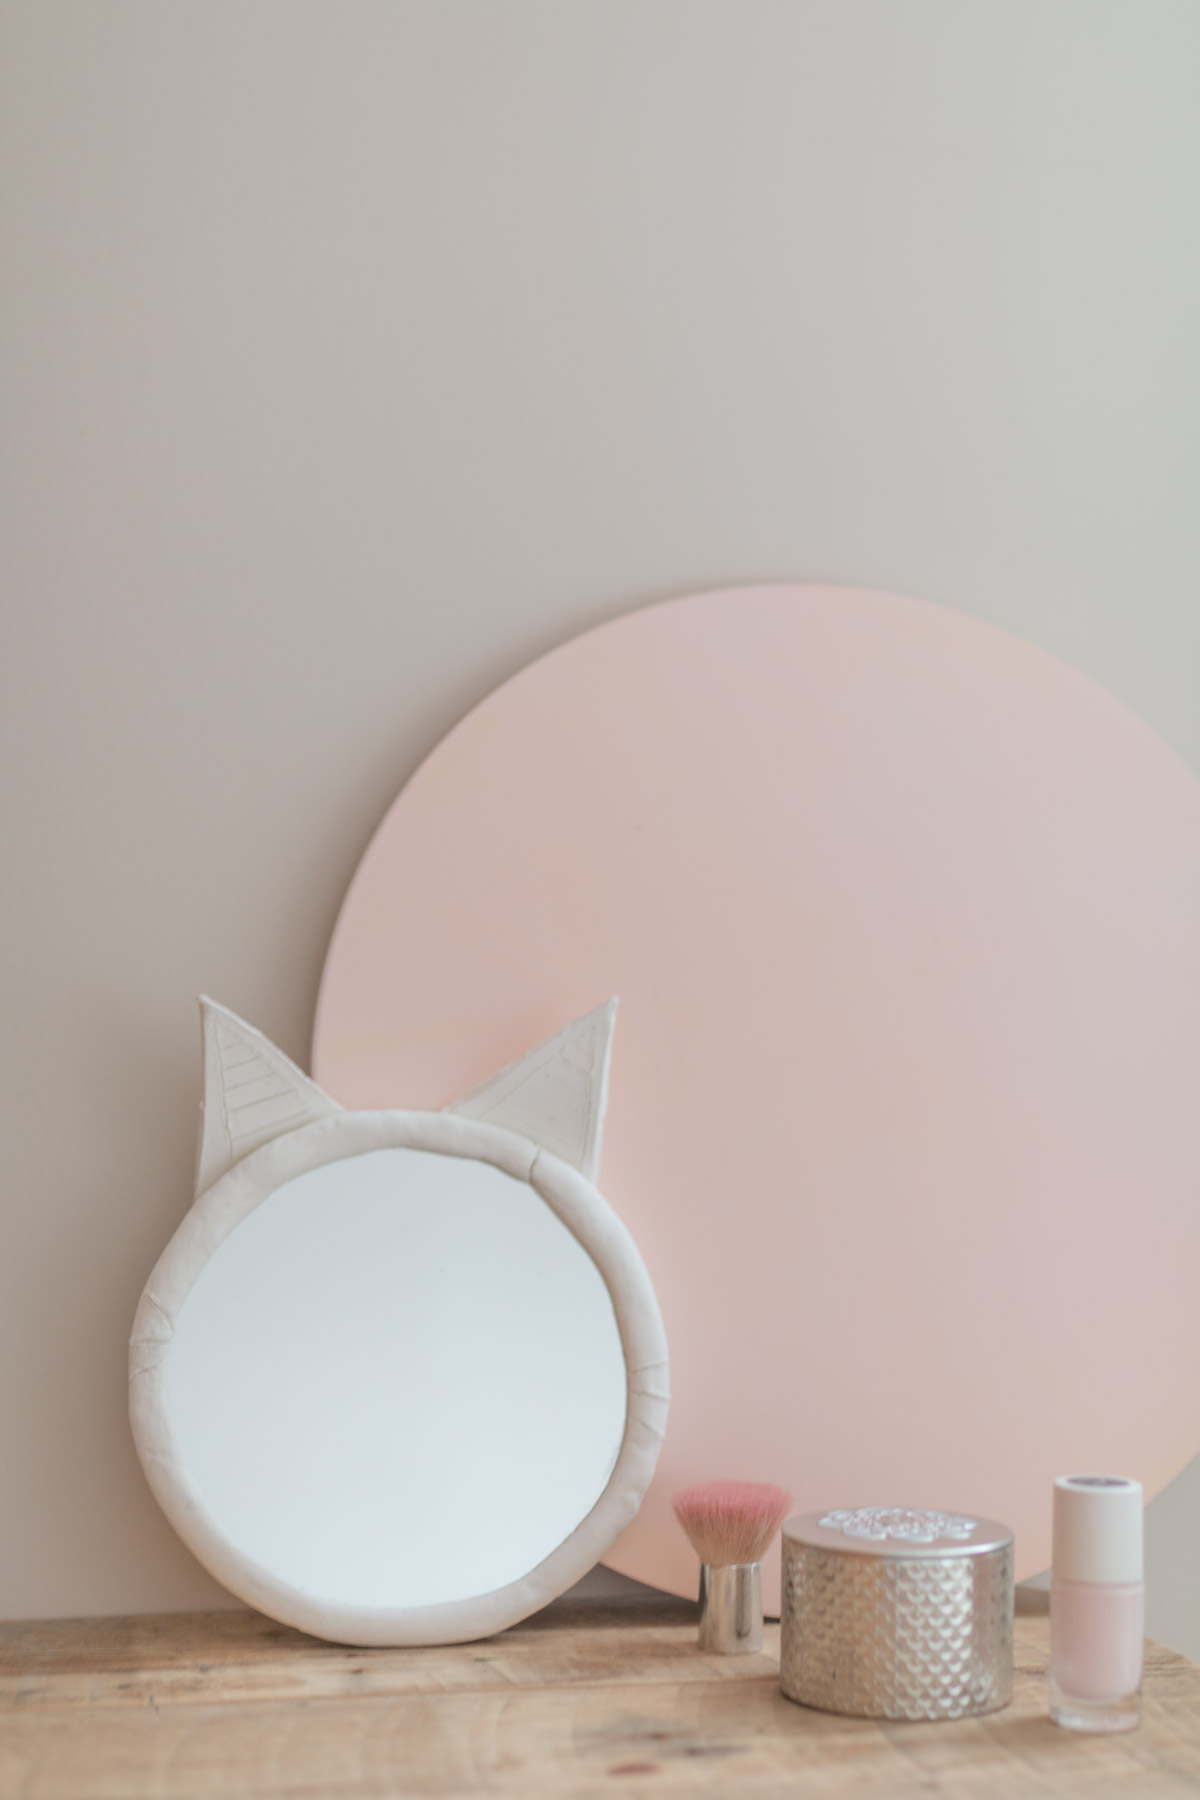 DIY customiser son miroir en chat I Sp4nkblog-17